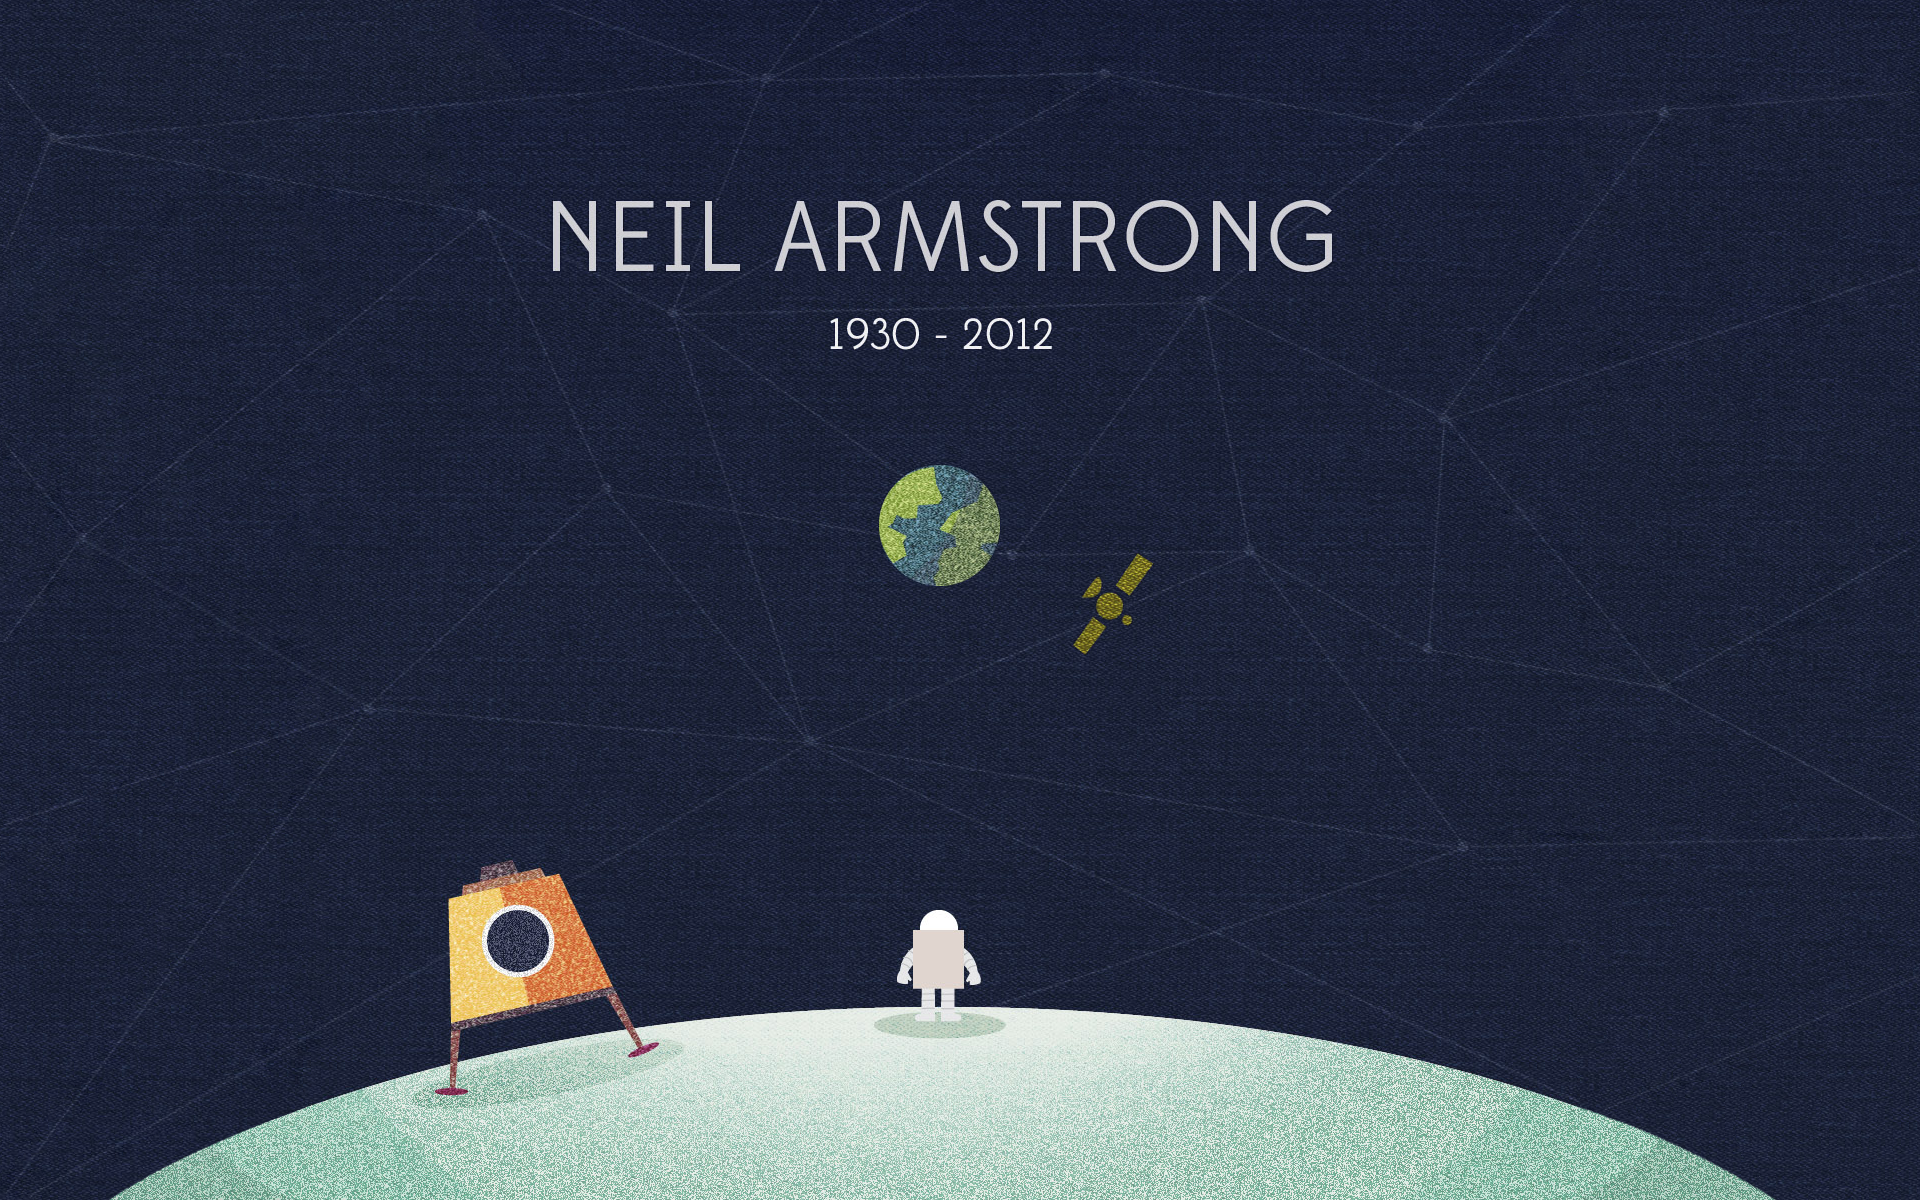 neil armstrong name animated - photo #7